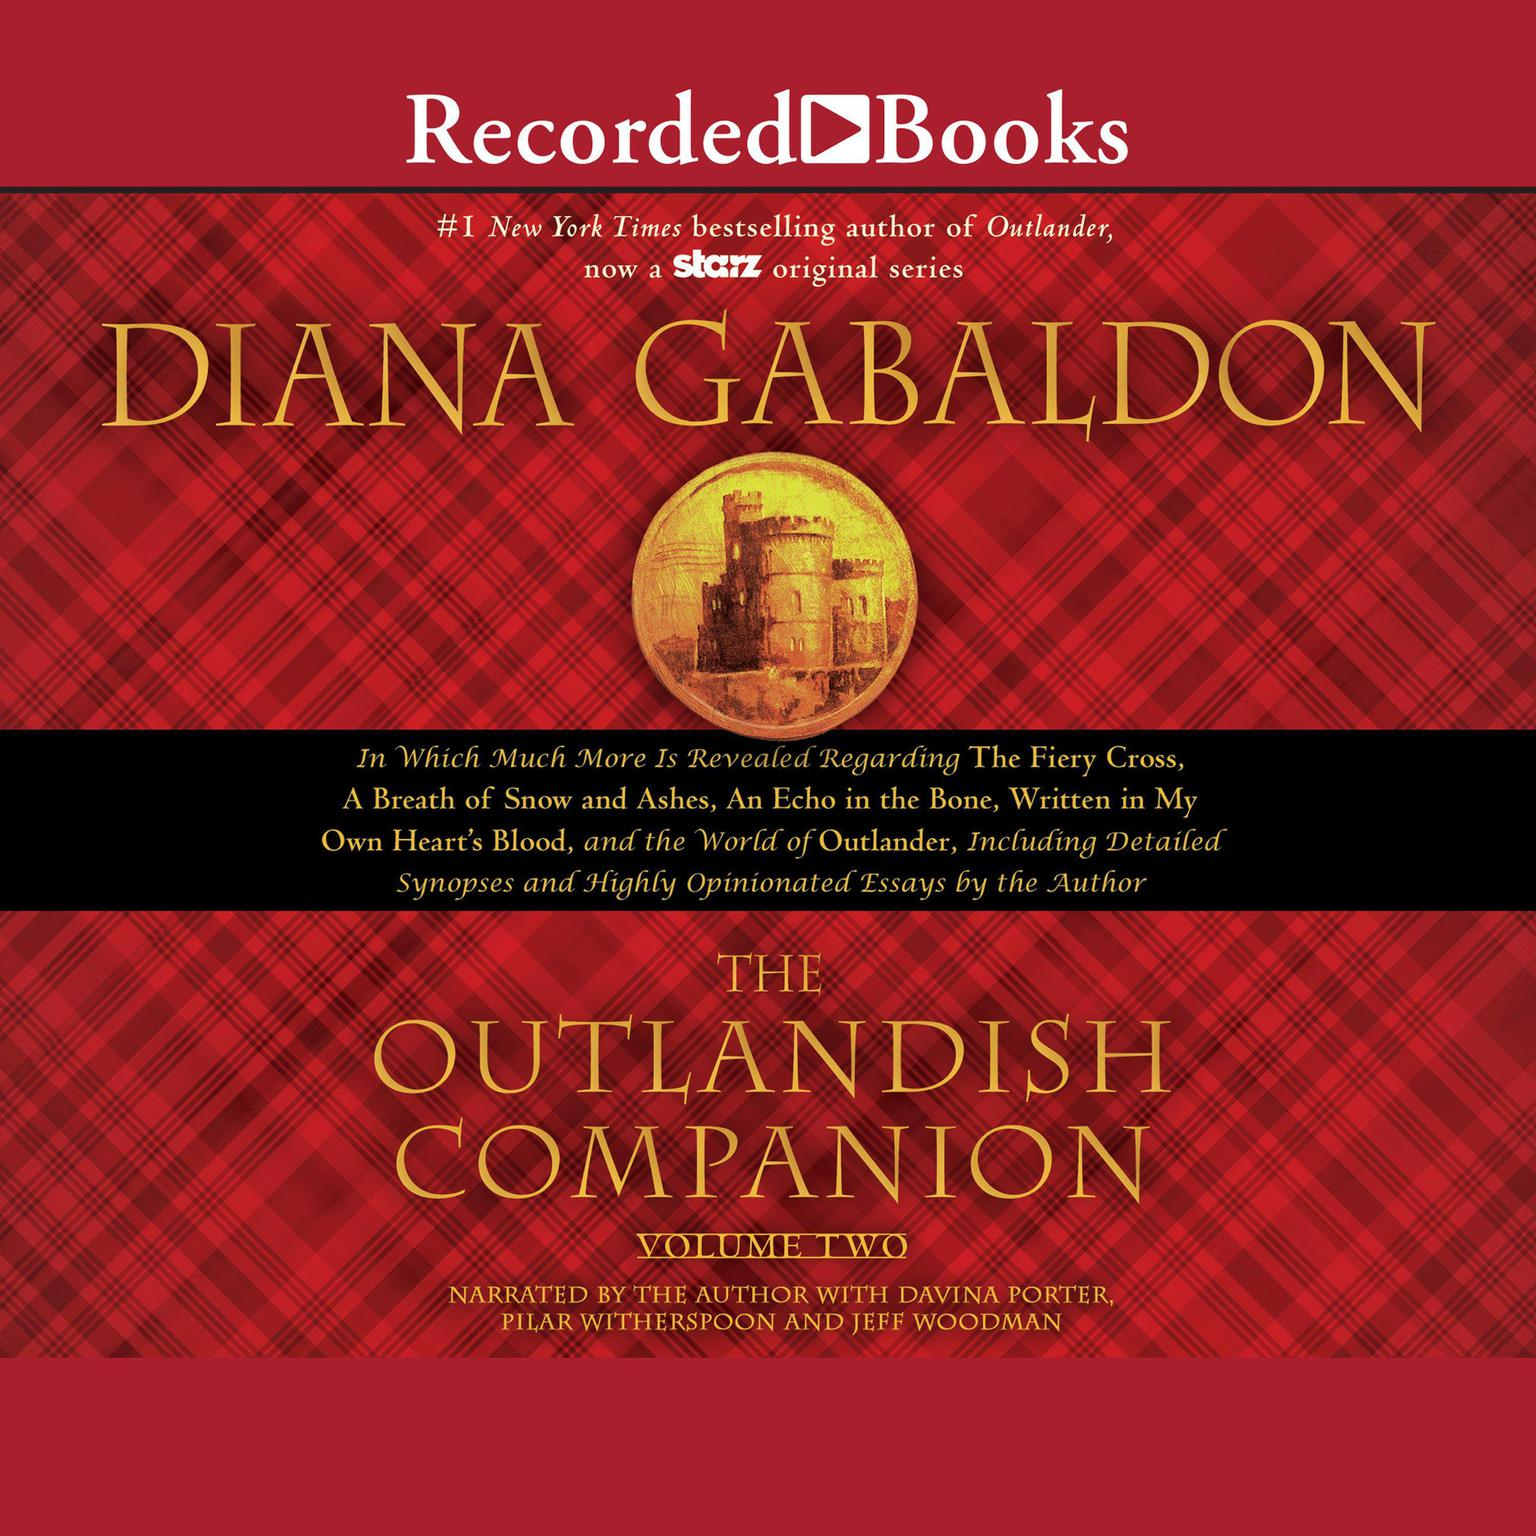 Printable The Outlandish Companion Volume Two: The Companion to The Fiery Cross, A Breath of Snow and Ashes, An Echo in the Bone, and Written in My Own Heart's Blood Audiobook Cover Art